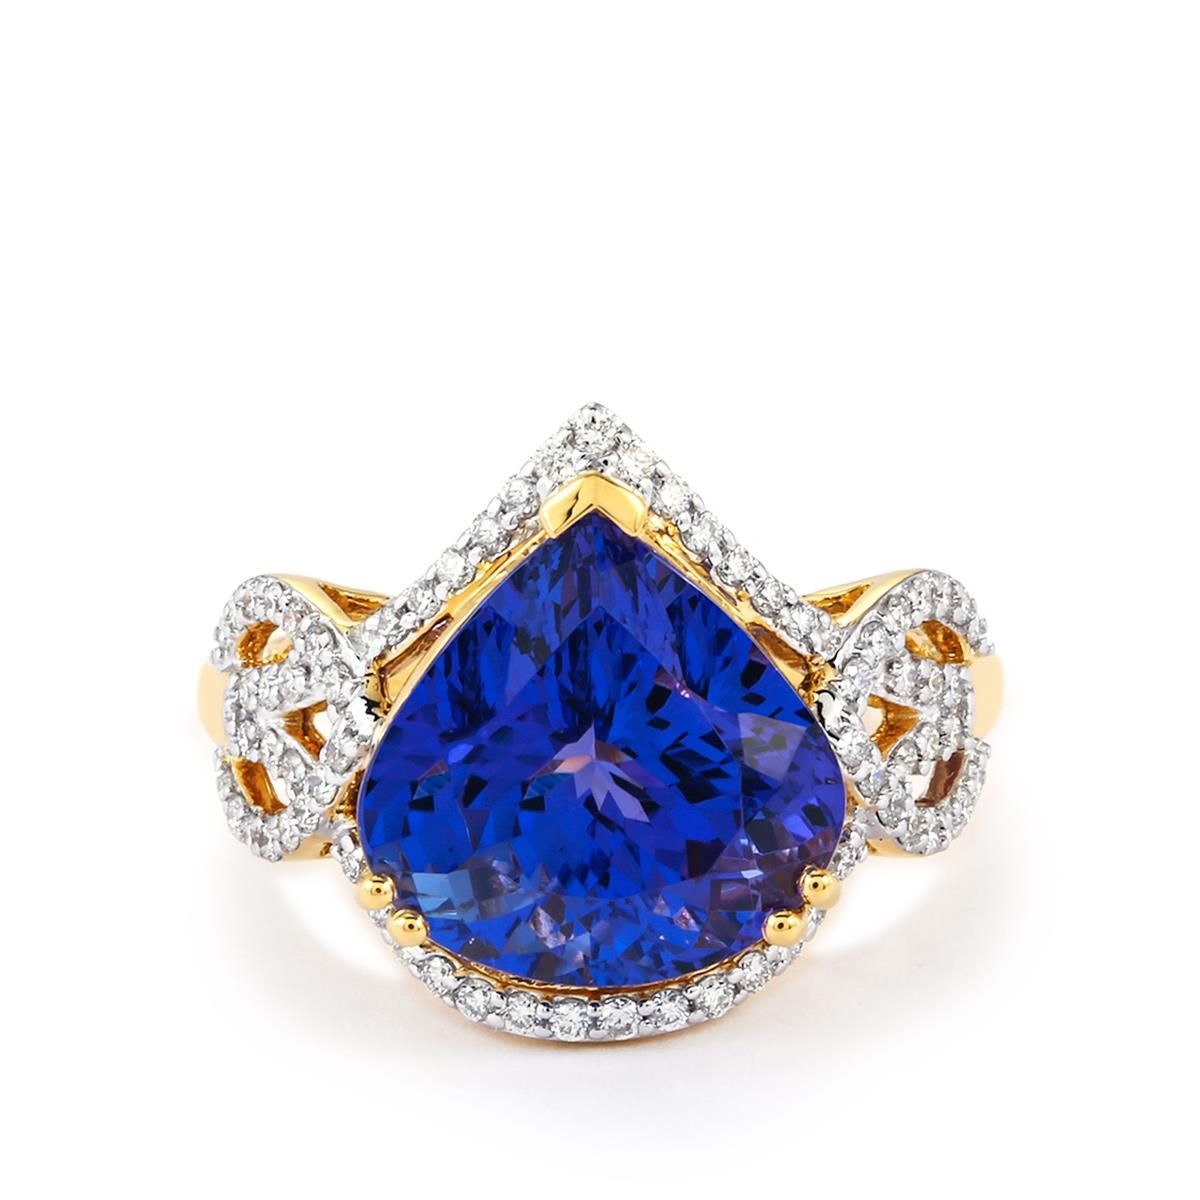 A classically designed Ring from the Lorique collection, made of 18k Gold featuring 7.60cts of charming AAA Tanzanite with dazzling Diamonds.